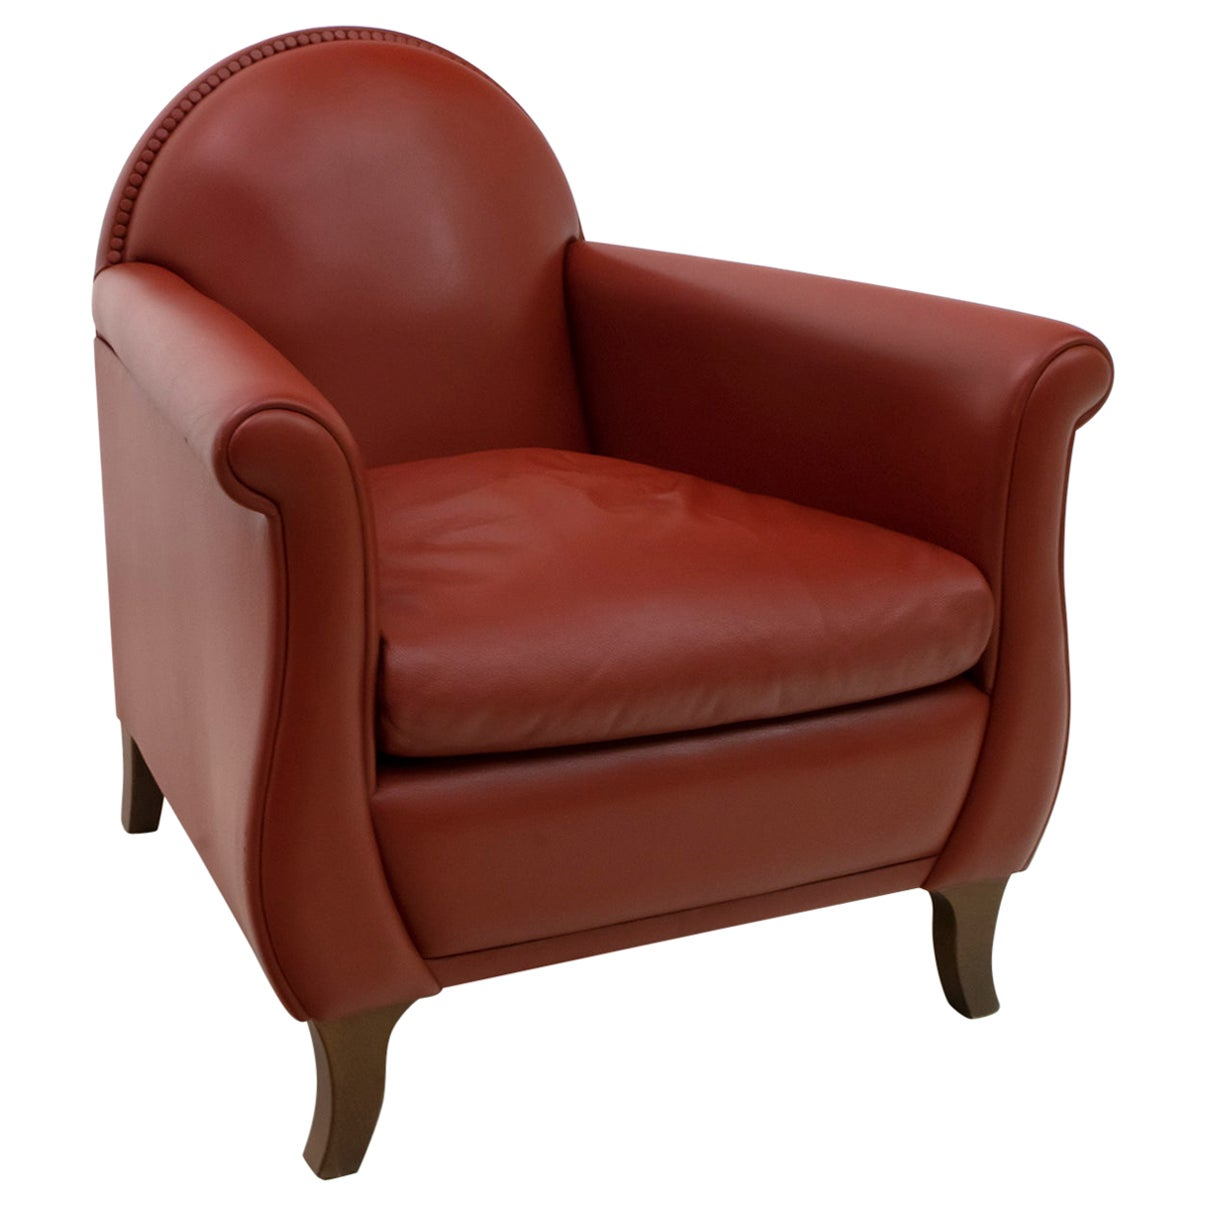 "Renzo Frau Italian Leather Armchair ""Lyra"" by Poltrona Frau"